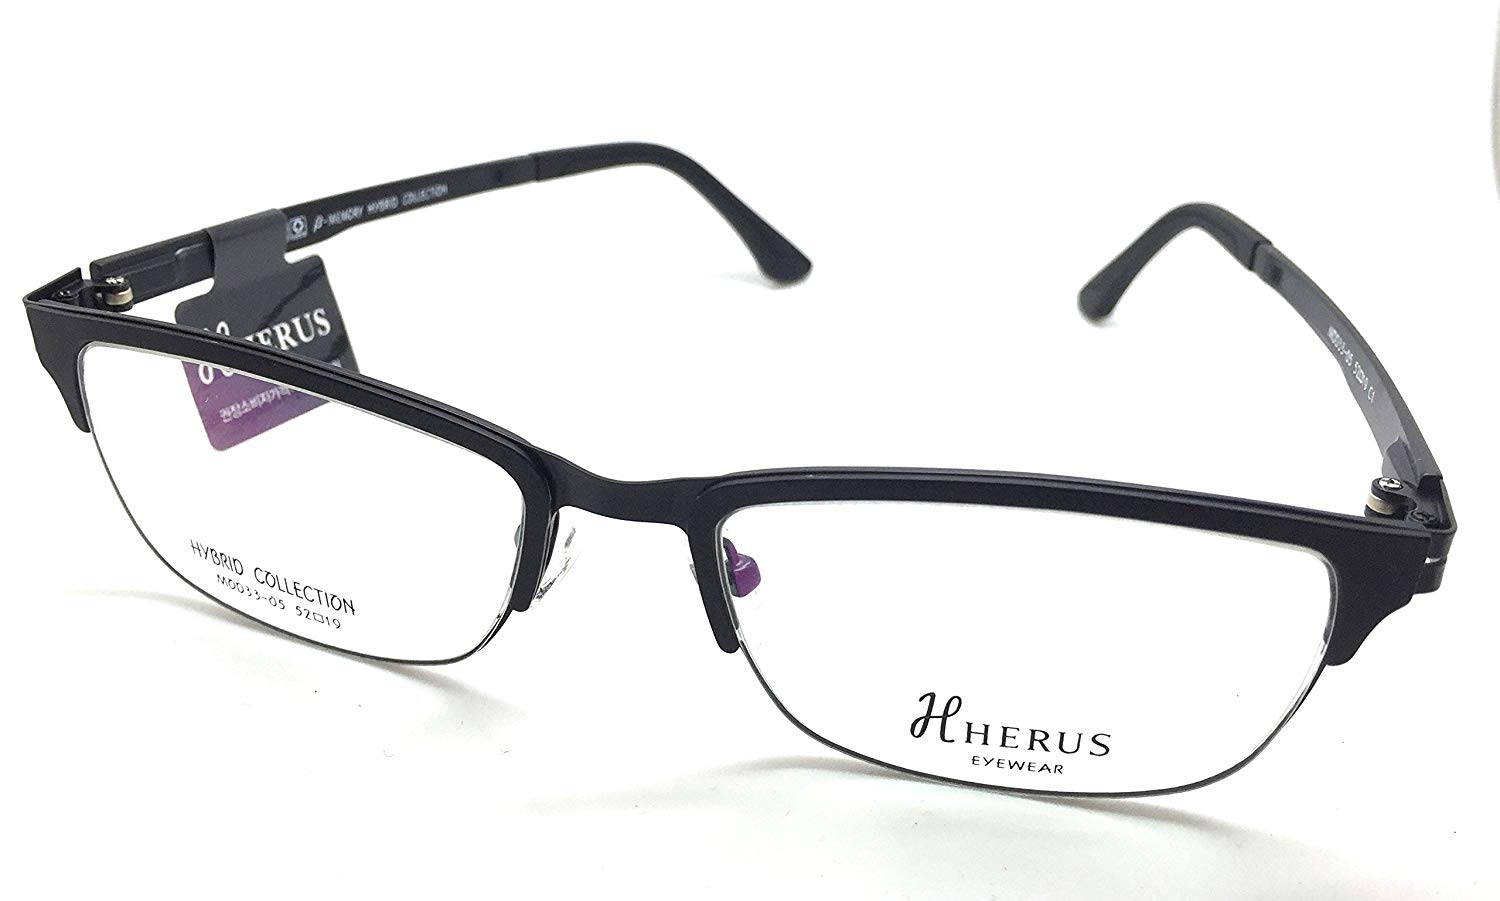 e58dfa5fbad Get Quotations · Hybrid Collection Prescription Eye Glasses Frame Metal and  Ultem Herus 33-05 C1